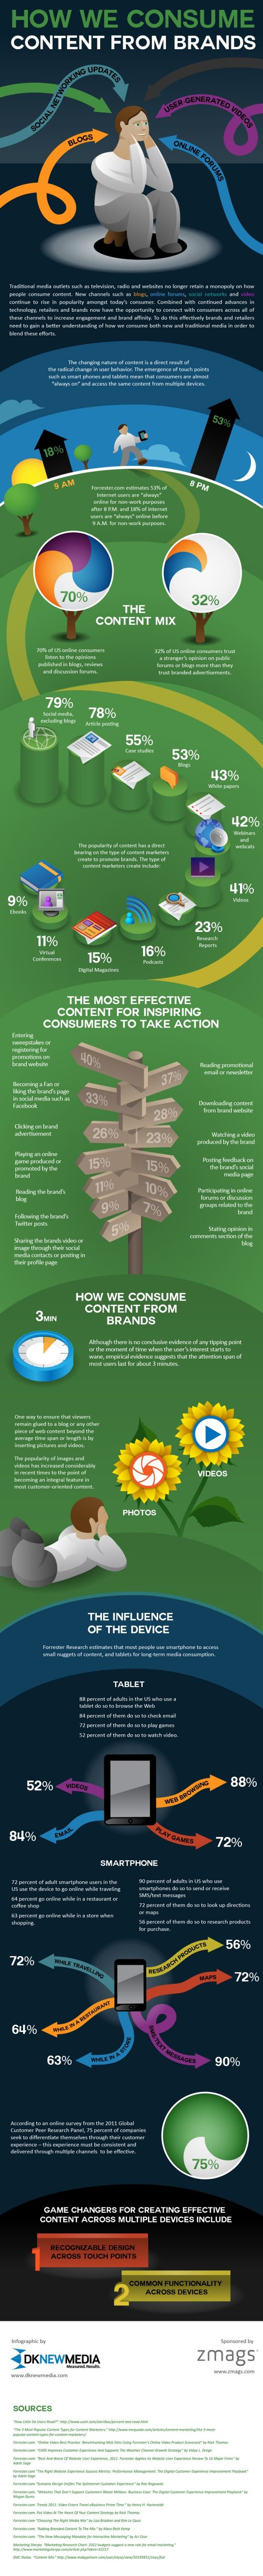 Infographic: How We Consume #Content from #Brands